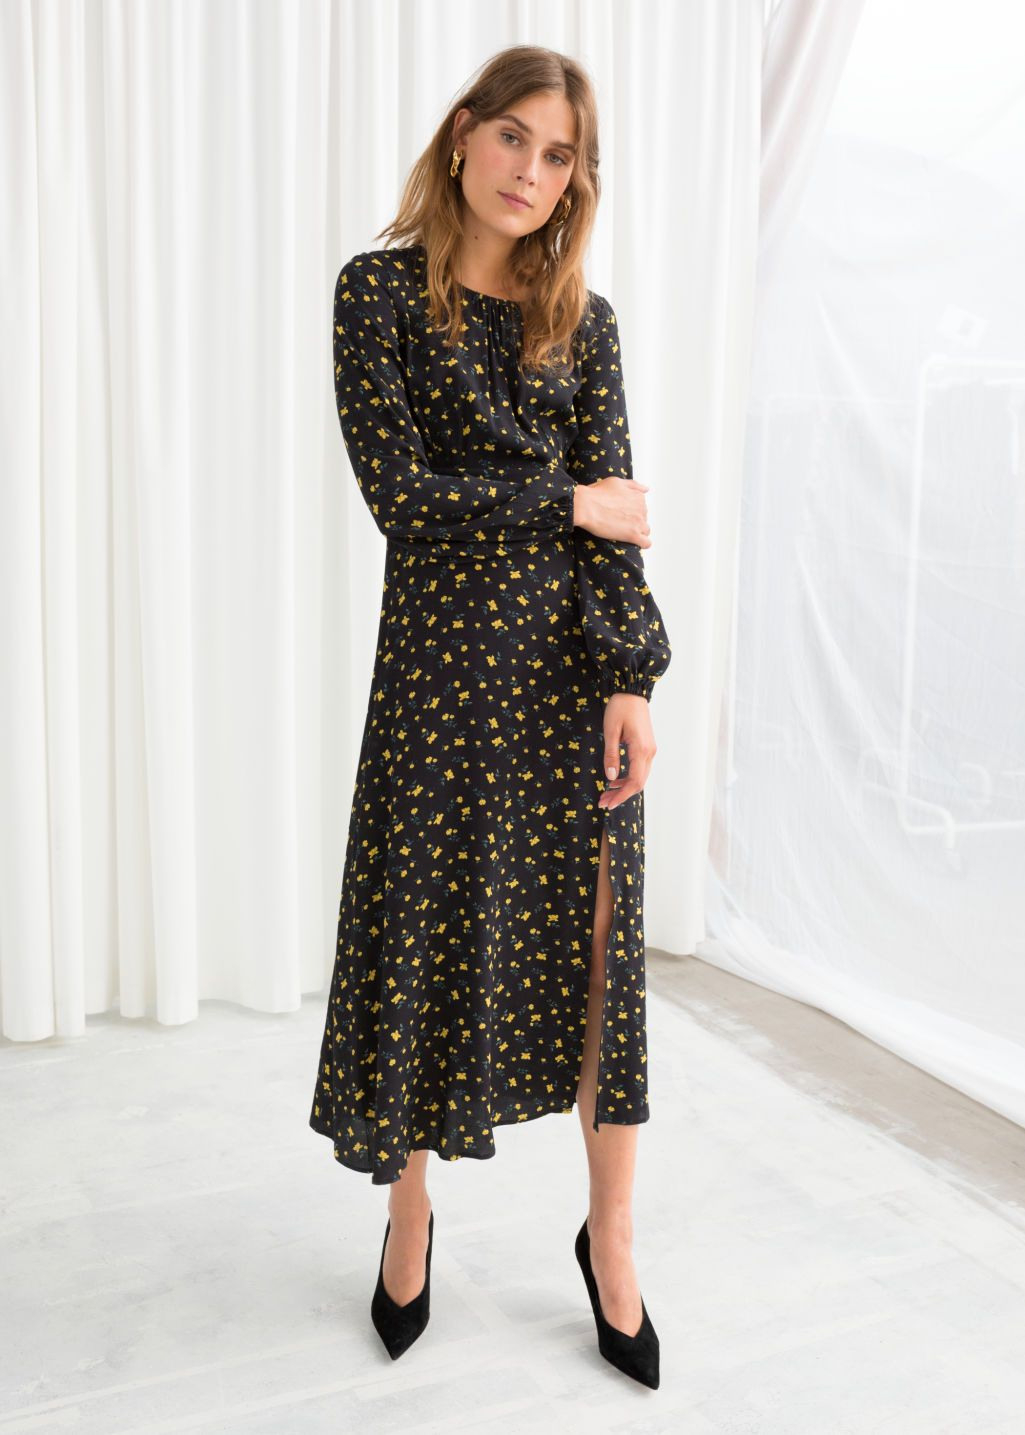 Floral Long Sleeve Midi Dress, Hochzeitsgast Outfit, Outfit